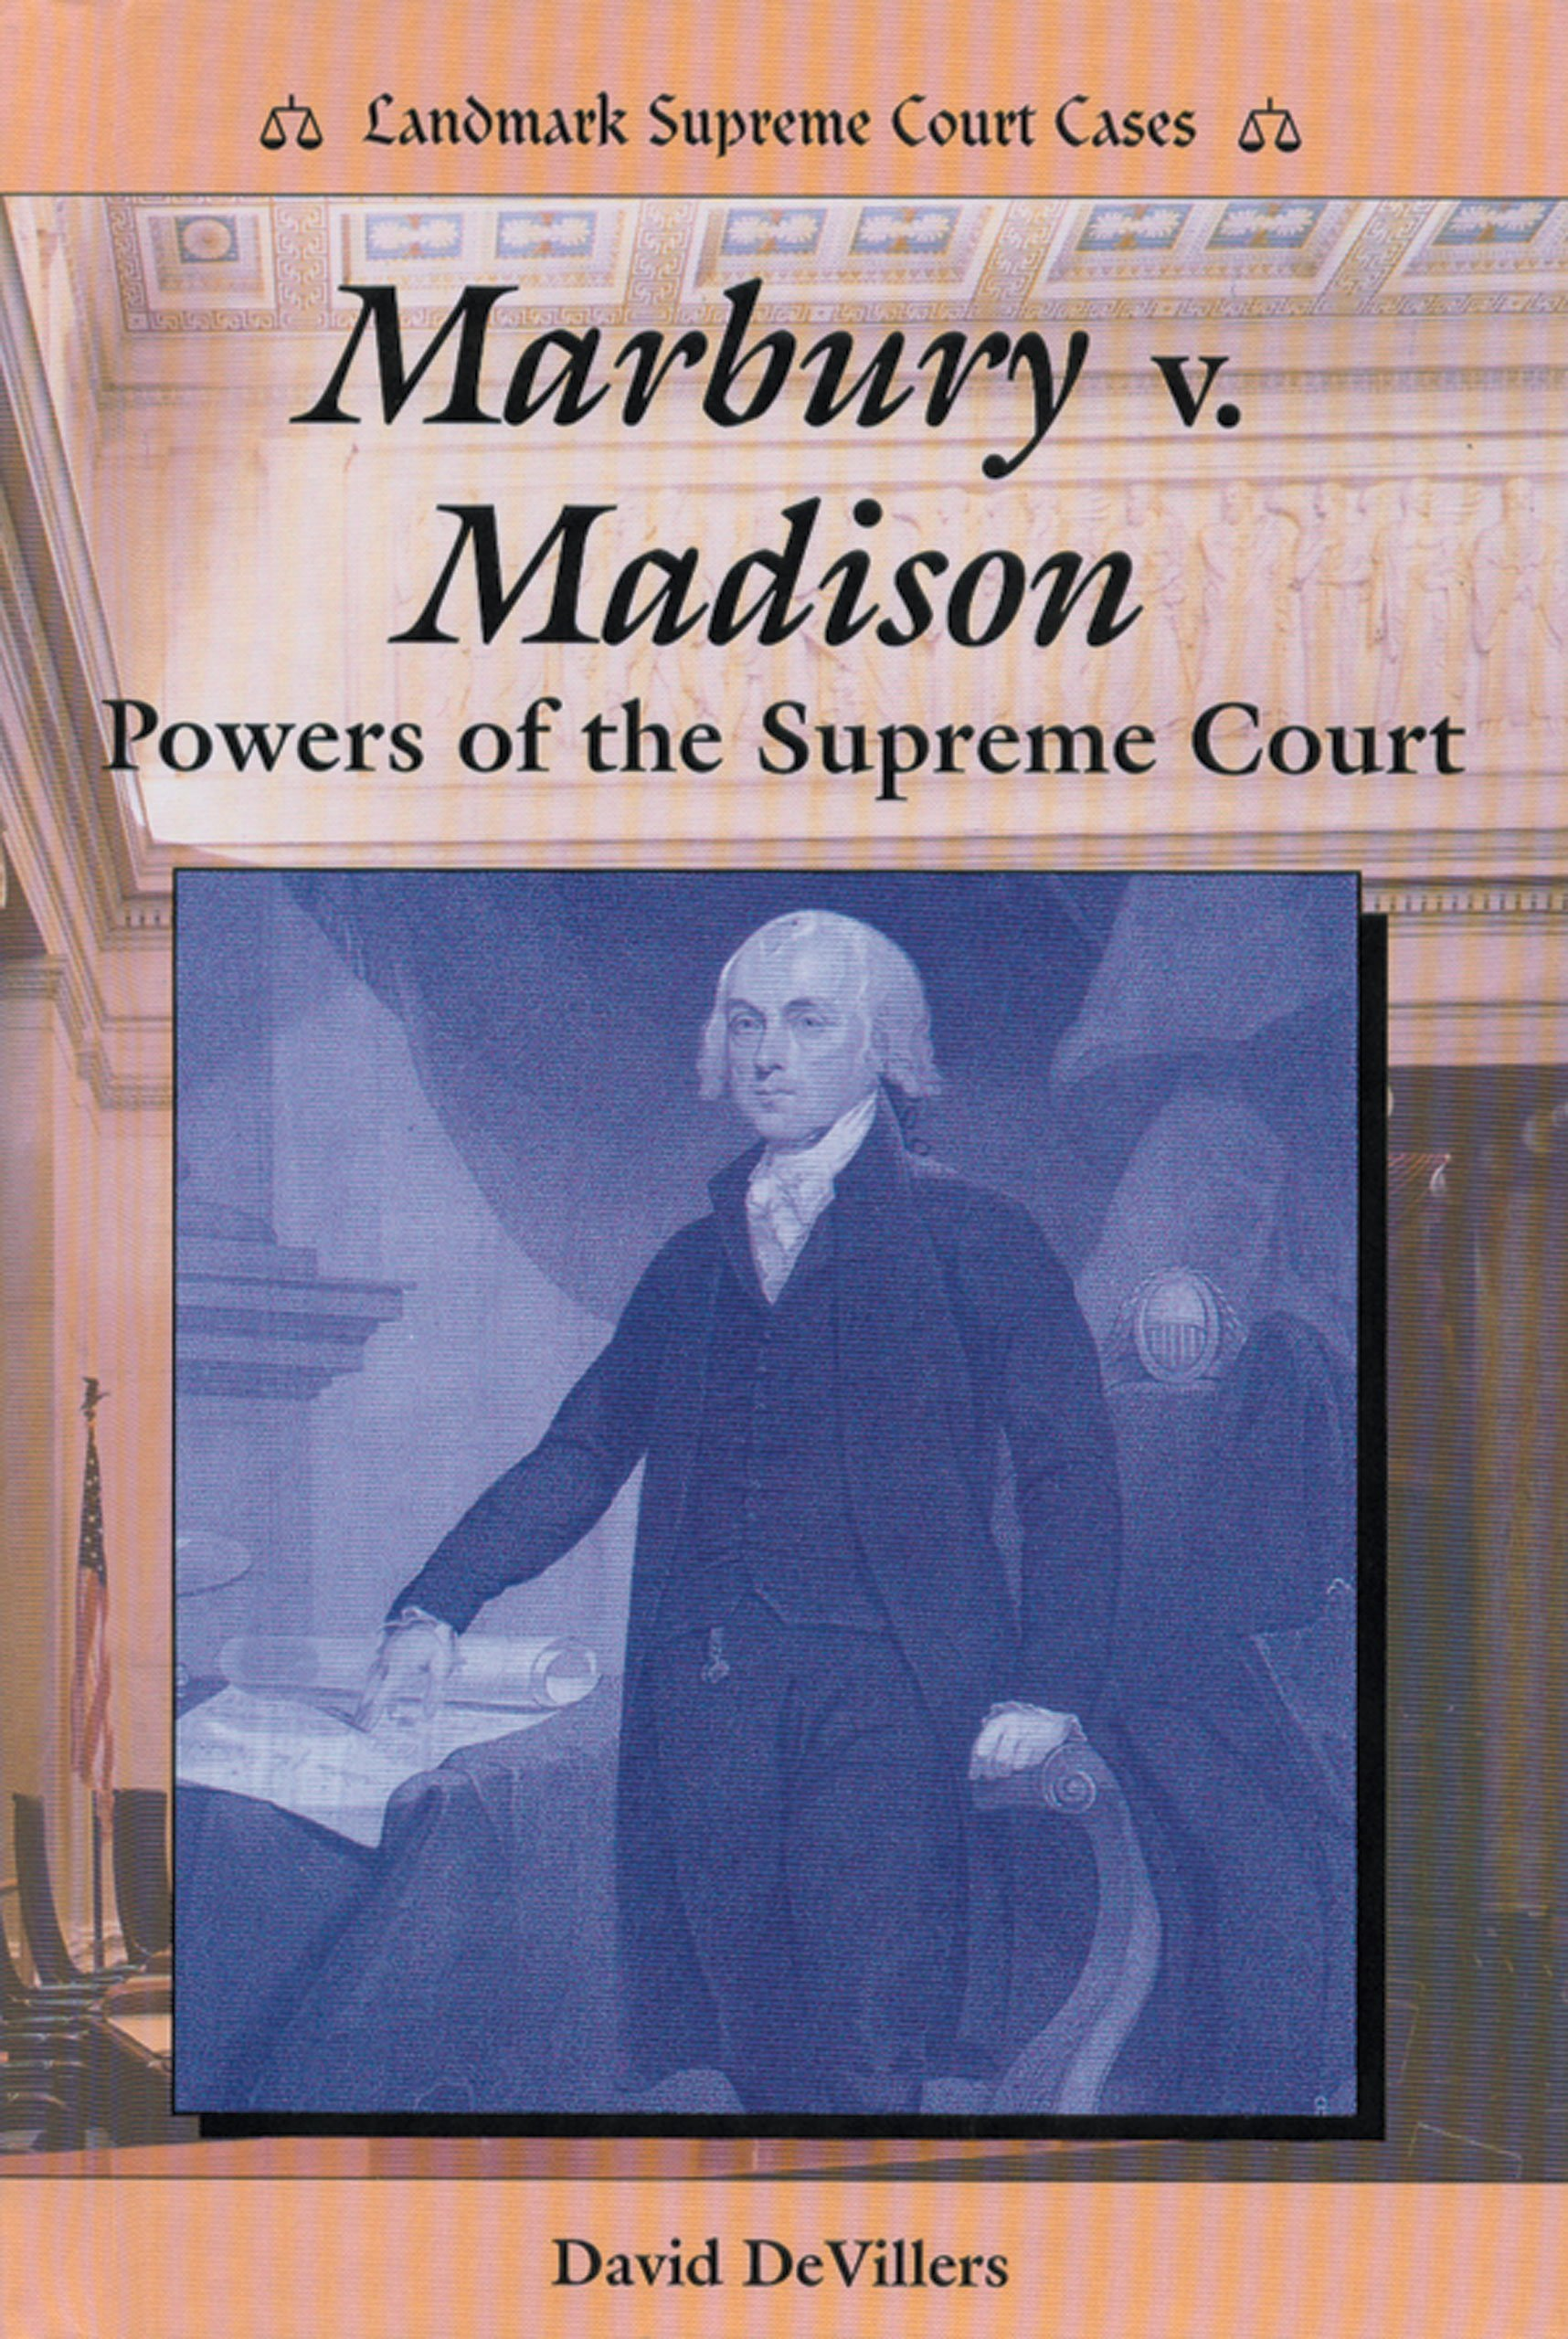 com marbury v madison powers of the supreme court  com marbury v madison powers of the supreme court landmark supreme court cases 9780894909672 david devillers books